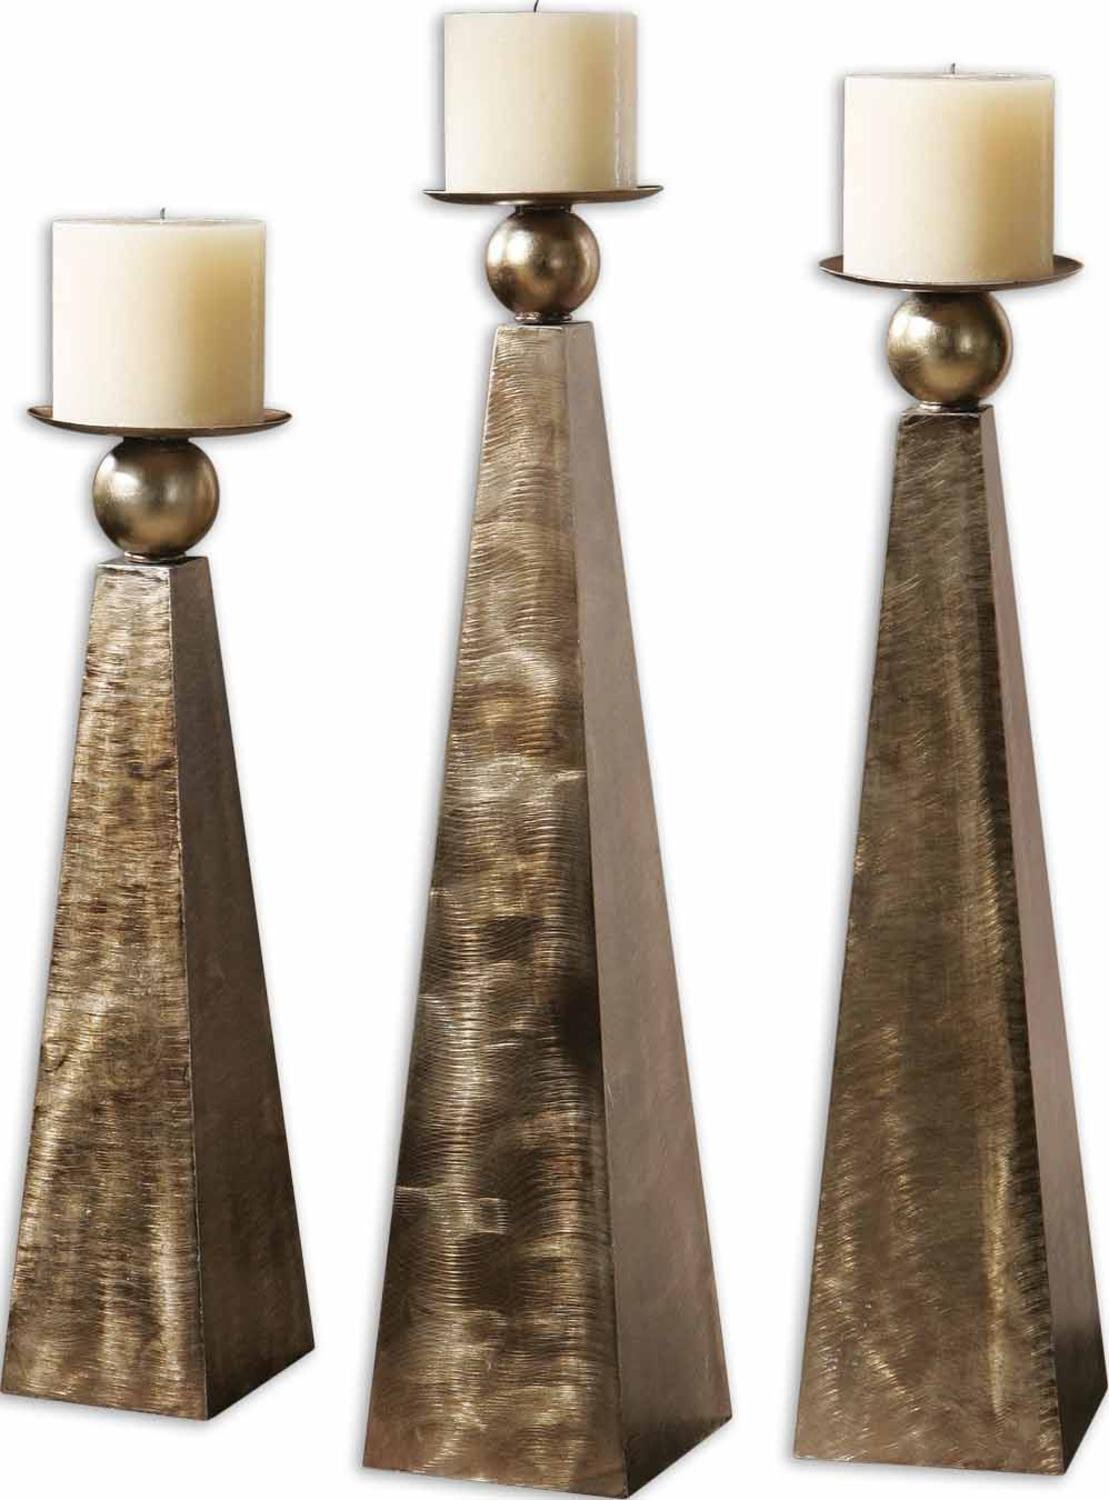 Set of 3 Antiqued Brushed Bronze Metal Pedestal Pillar Candle Holders 26''